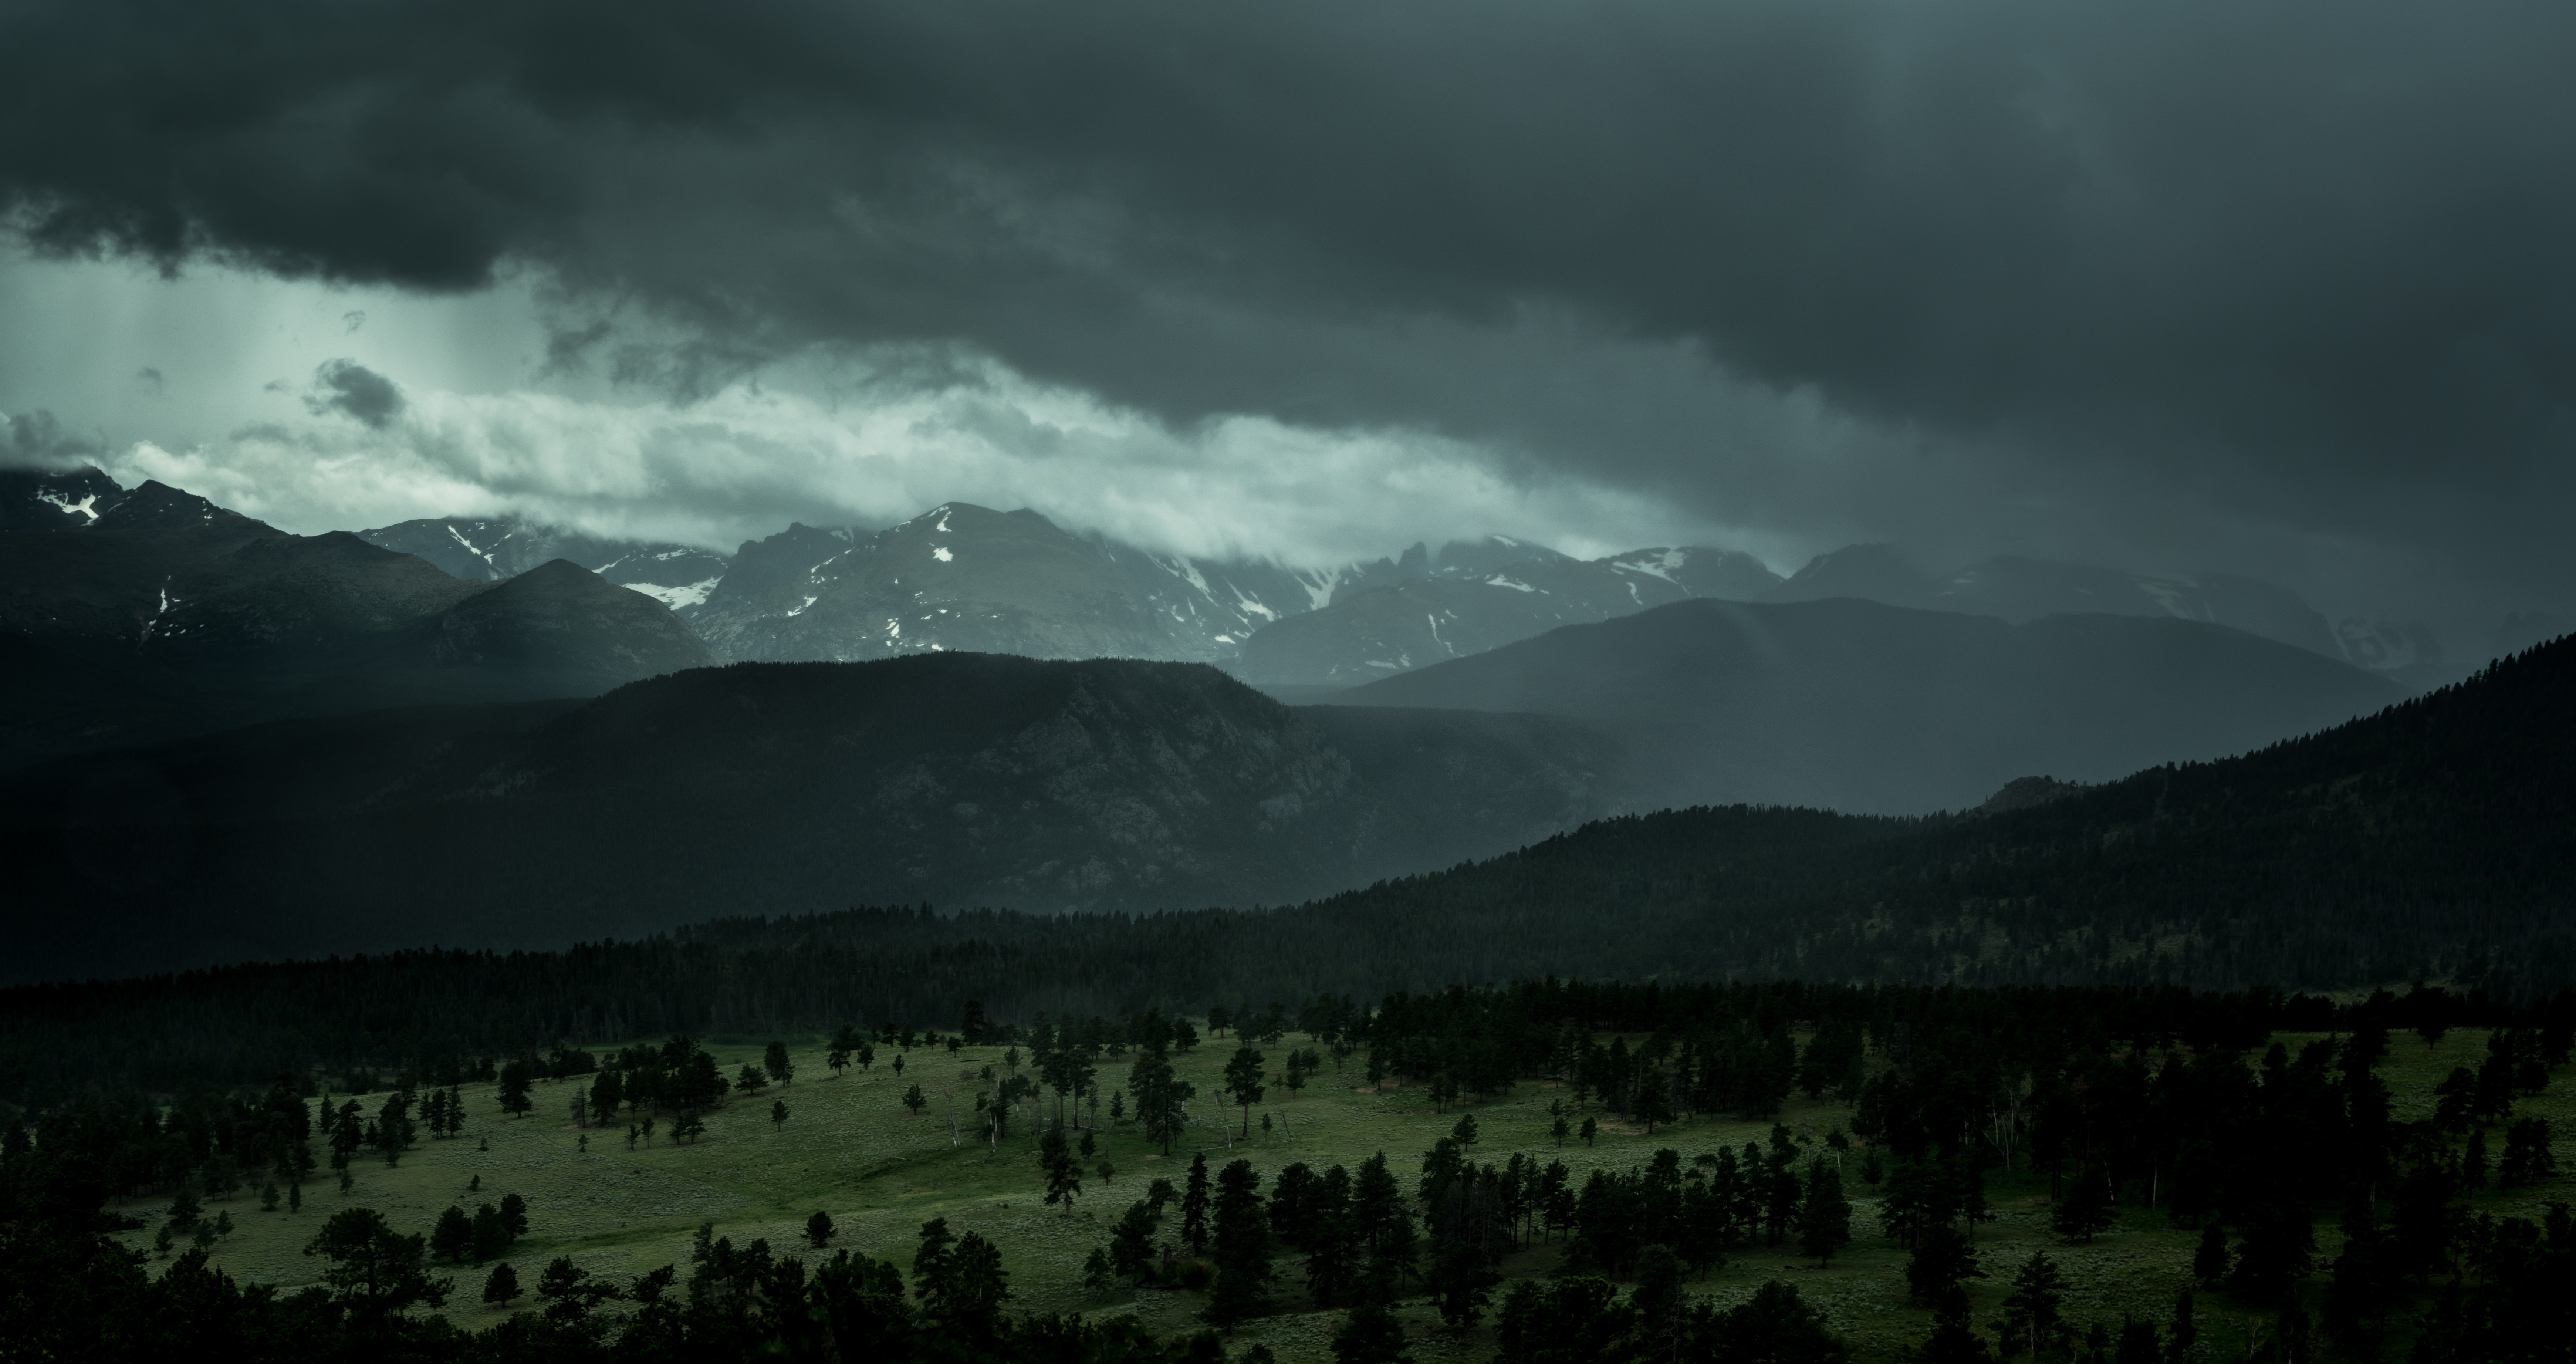 Overcast sky over a wooded plain near the mountains in Rocky Mountain National Park